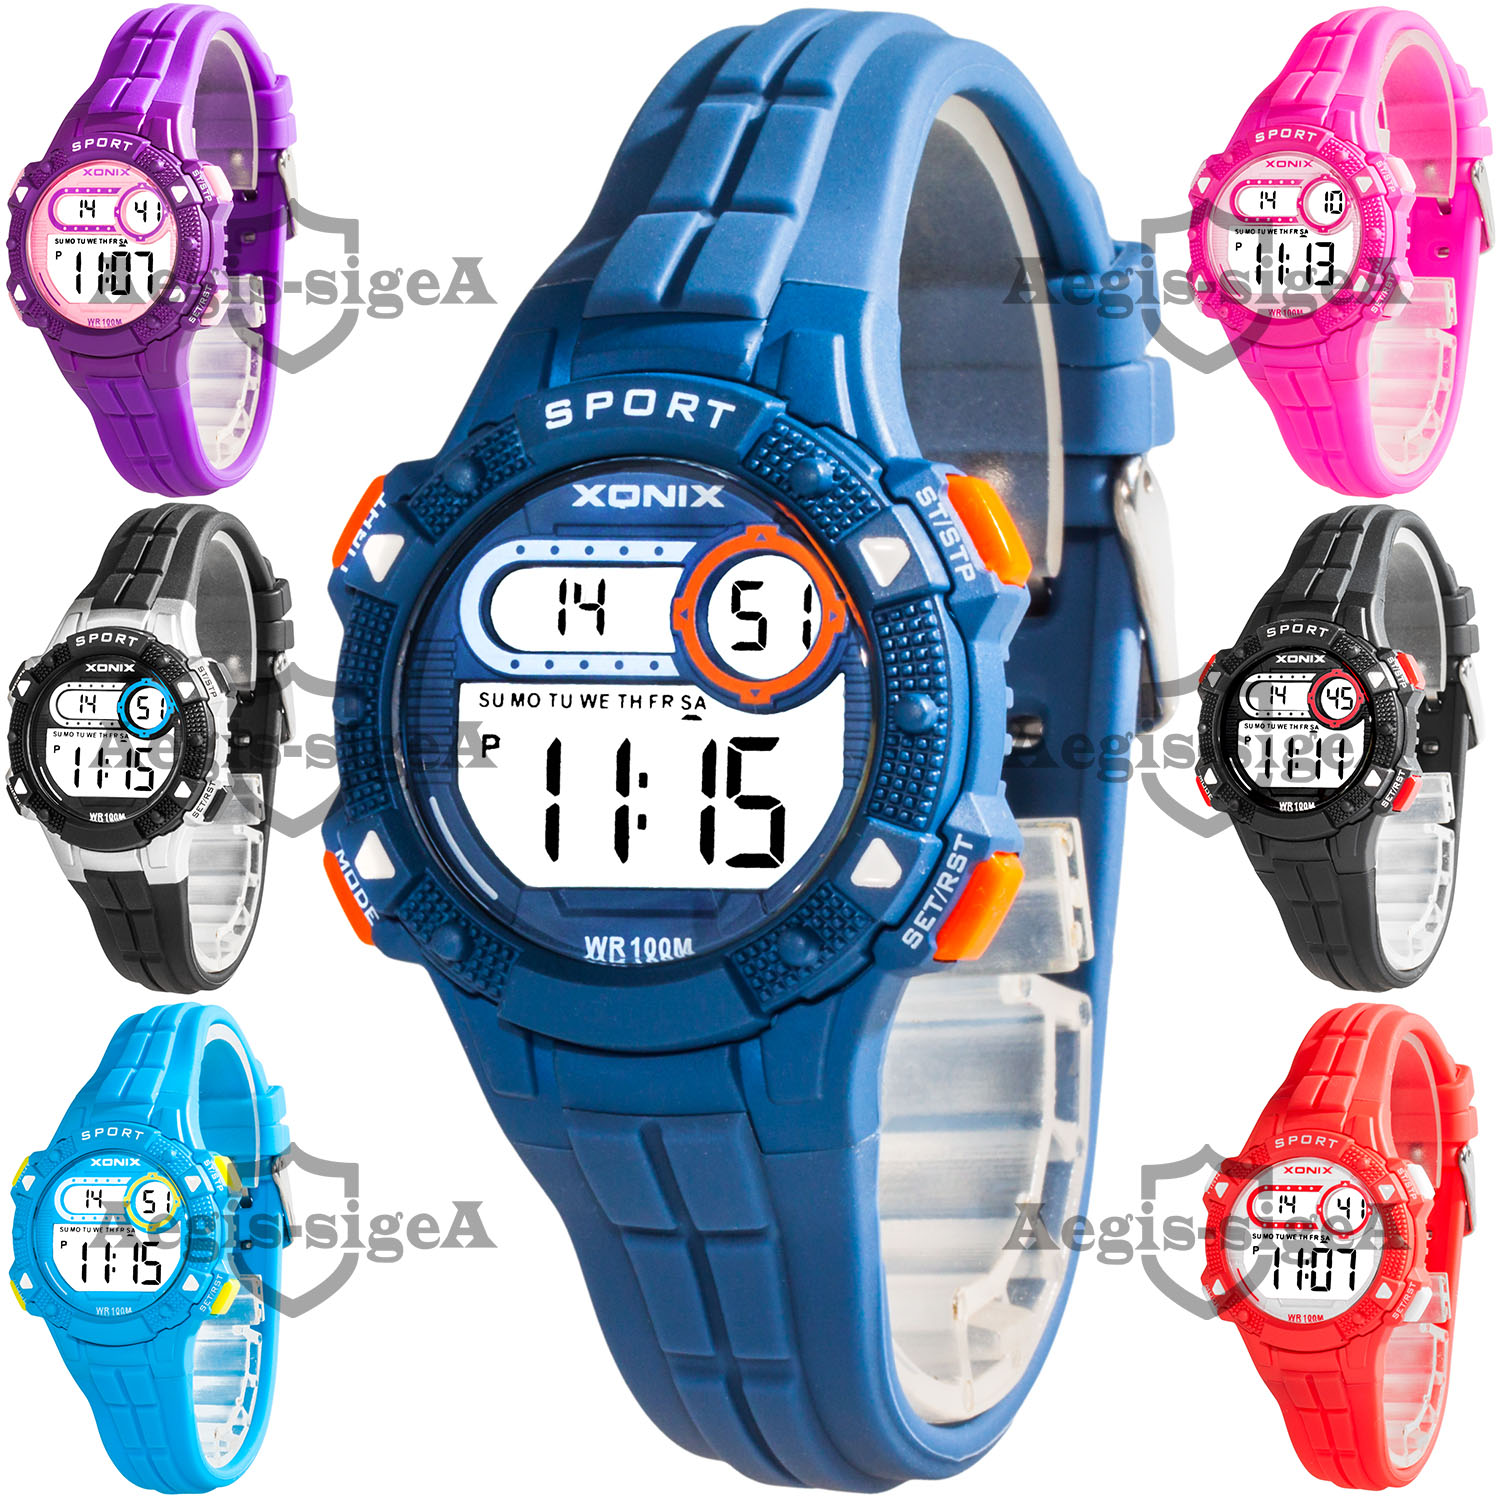 Details About Digital Kids Wrist Watch Xonix Stopwatch Alarm Timer Water Resistant 100m